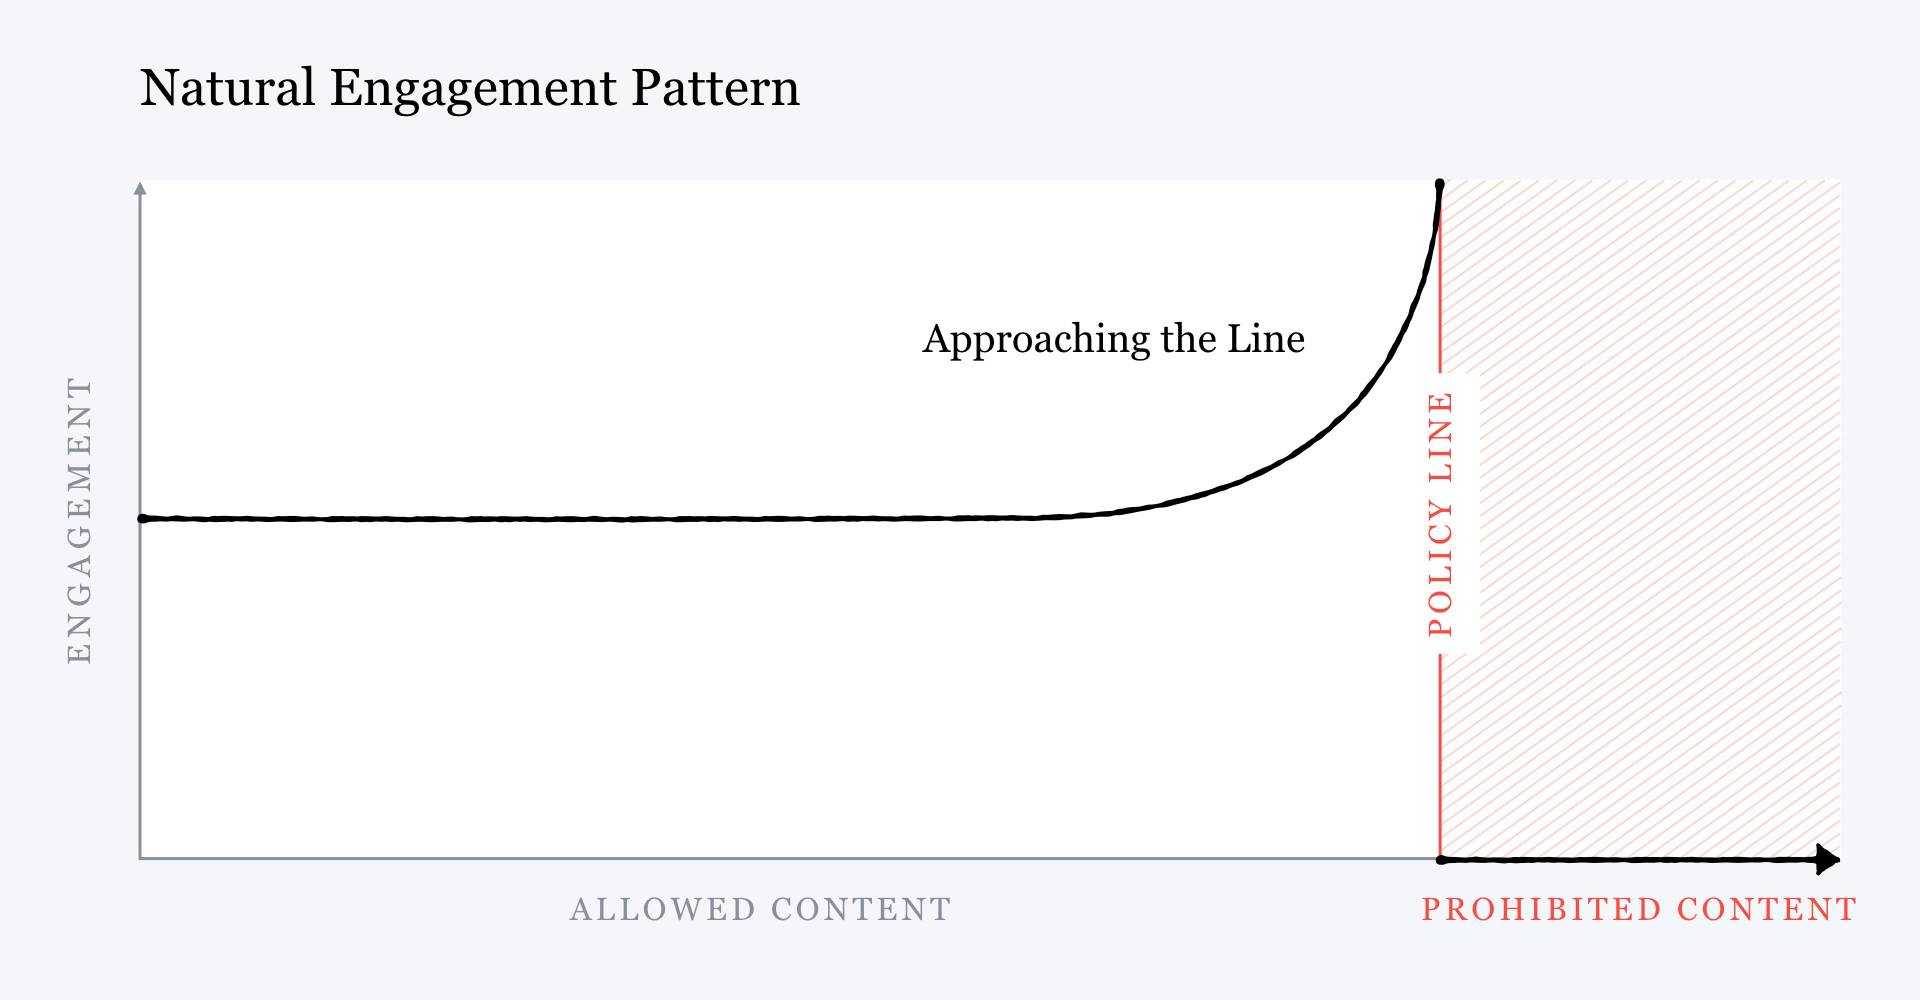 """A chart titled """"natural engagement pattern"""" that shows allowed content on the X axis, engagement on the Y axis, and an exponential increase in engagement as content nears the policy line for prohibited content."""